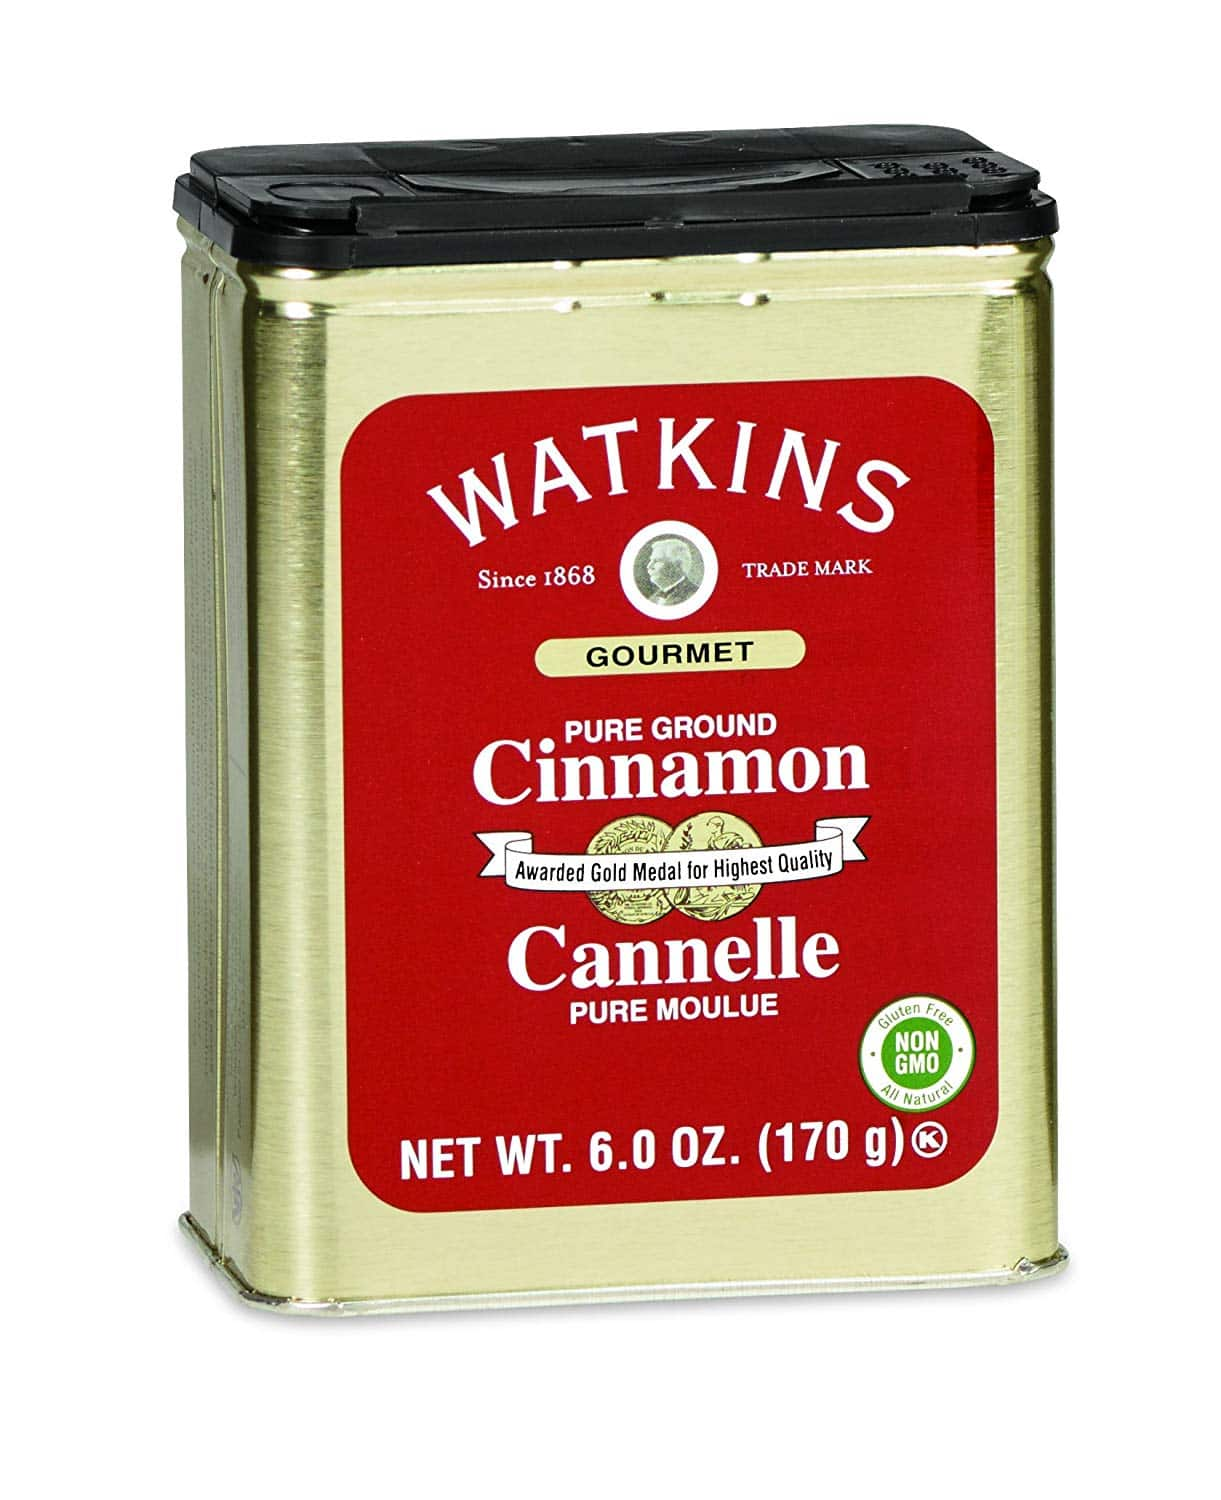 Watkins All Natural Gourmet Spice Tin, Ground Cinnamon, 6 Ounce Can $7.64 AC *Add On +Free Shipping